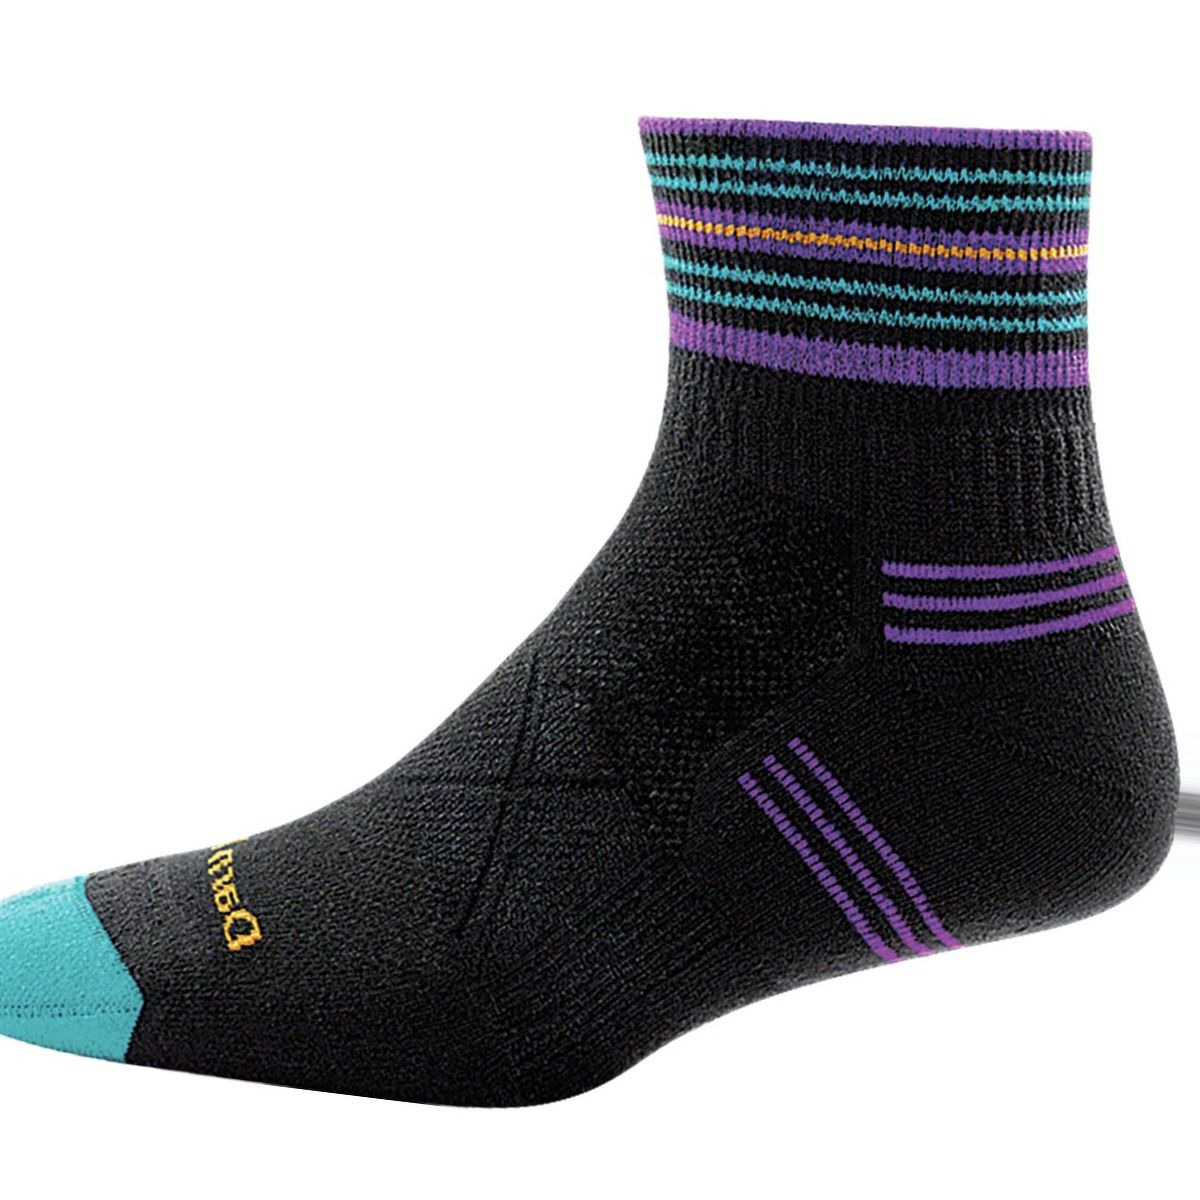 Darn Tough Vertex 1/4 UL Cool Max Running Sock - Women's